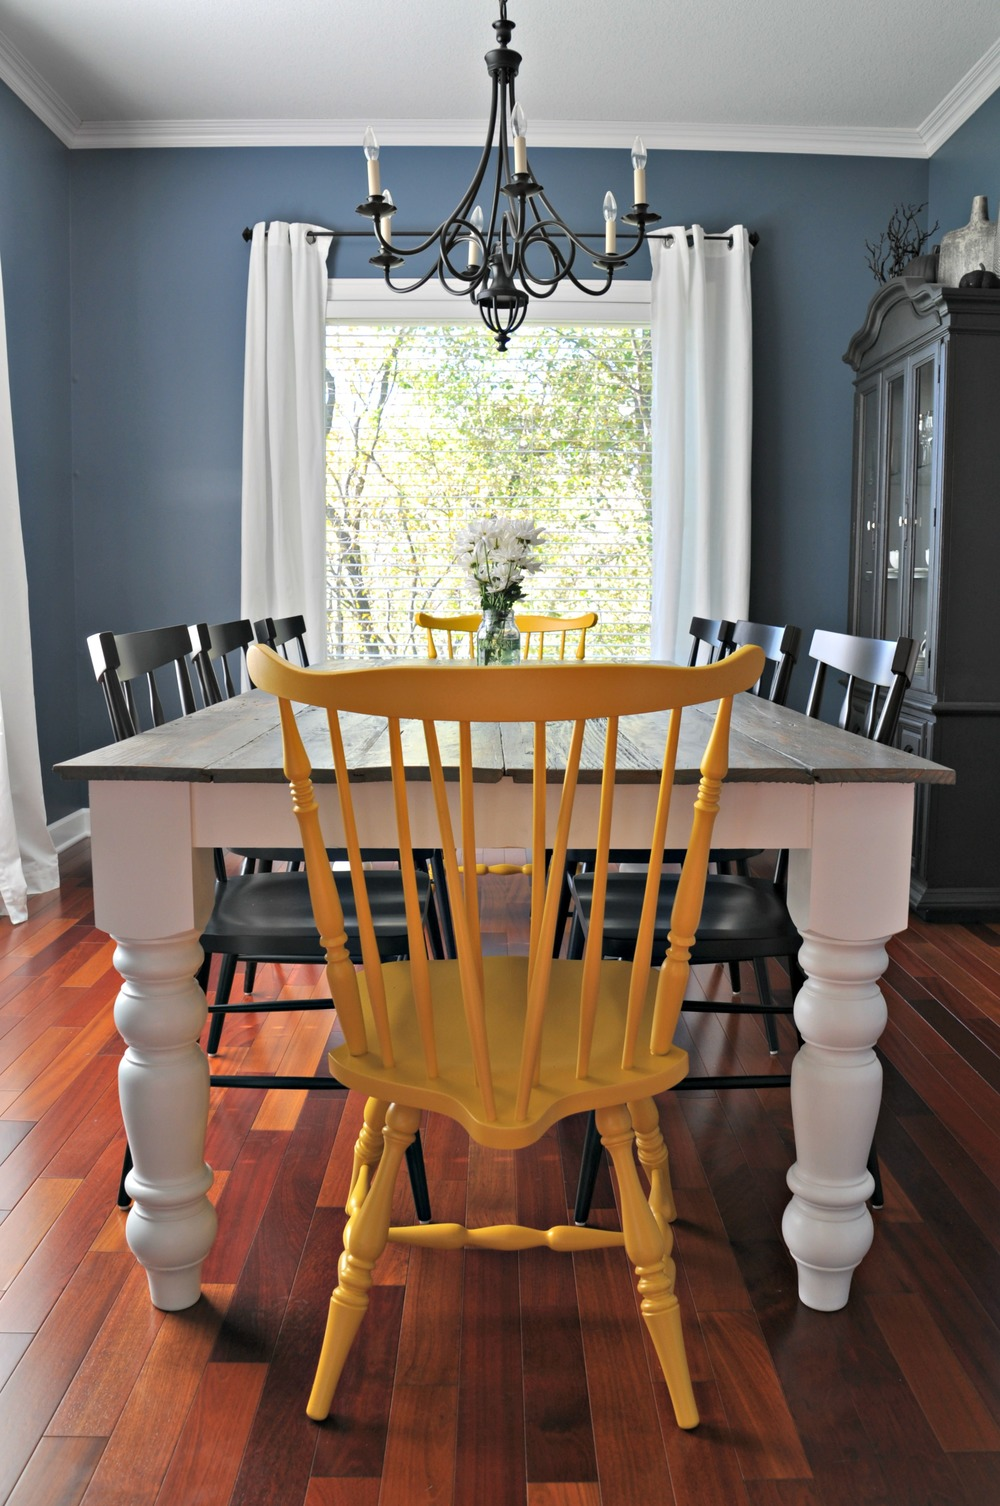 Dining Room Chair Design Plans build it — decor and the dog